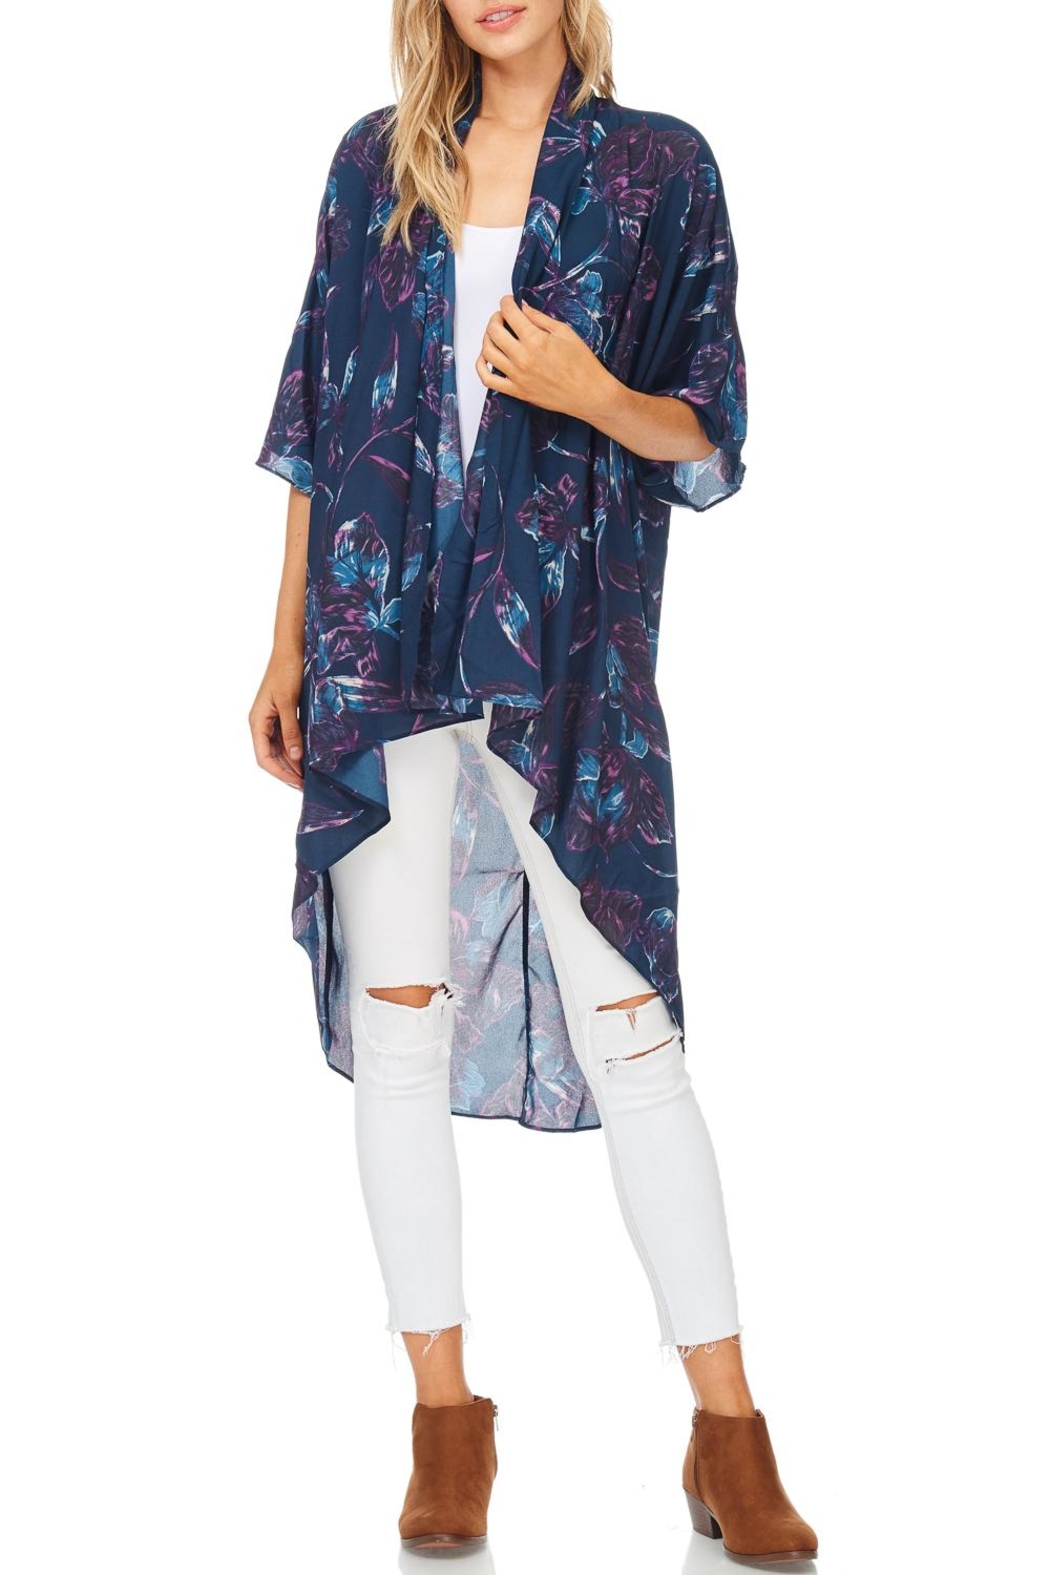 Everly Navy Floral Kimono - Front Cropped Image